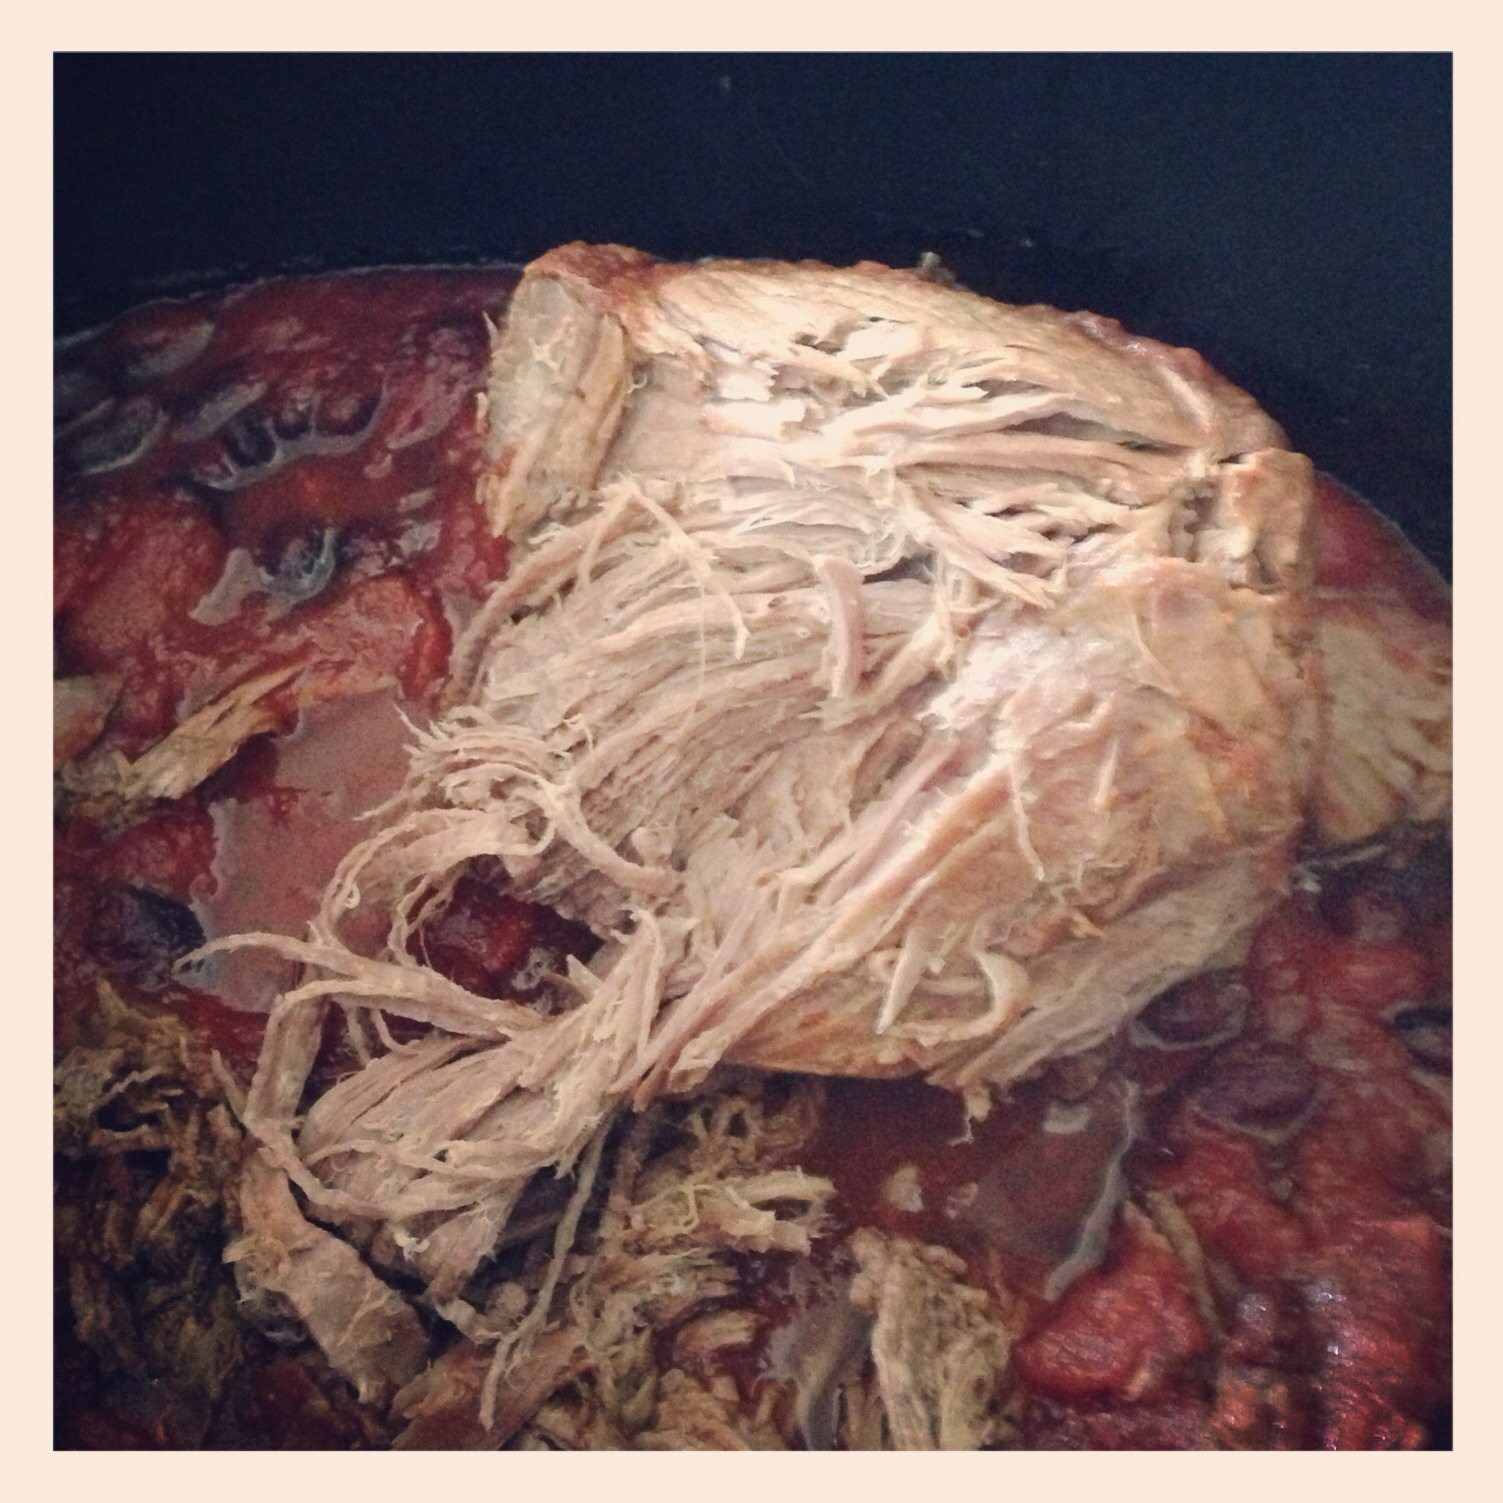 Shredded beef - recipe coming next week